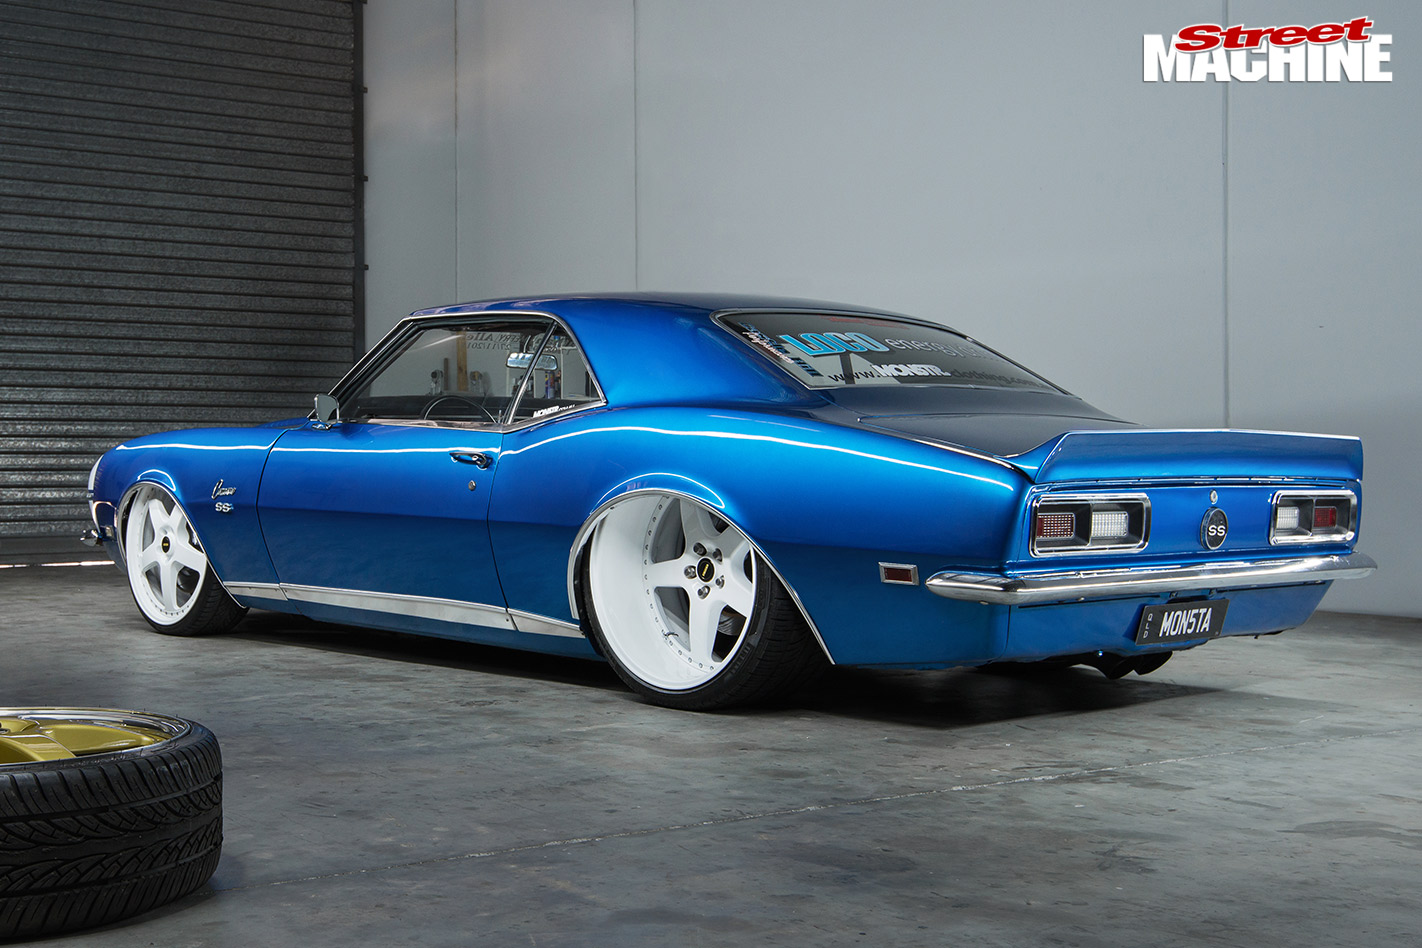 Turbo Ls Powered 1968 Chevrolet Camaro Chevy Project Car The Has A Custom Triangulated Four Link Rear End With Slam Specialties Ss 7 Airbags And Bilstein Shocks While Plated Arms Ridetech Reside